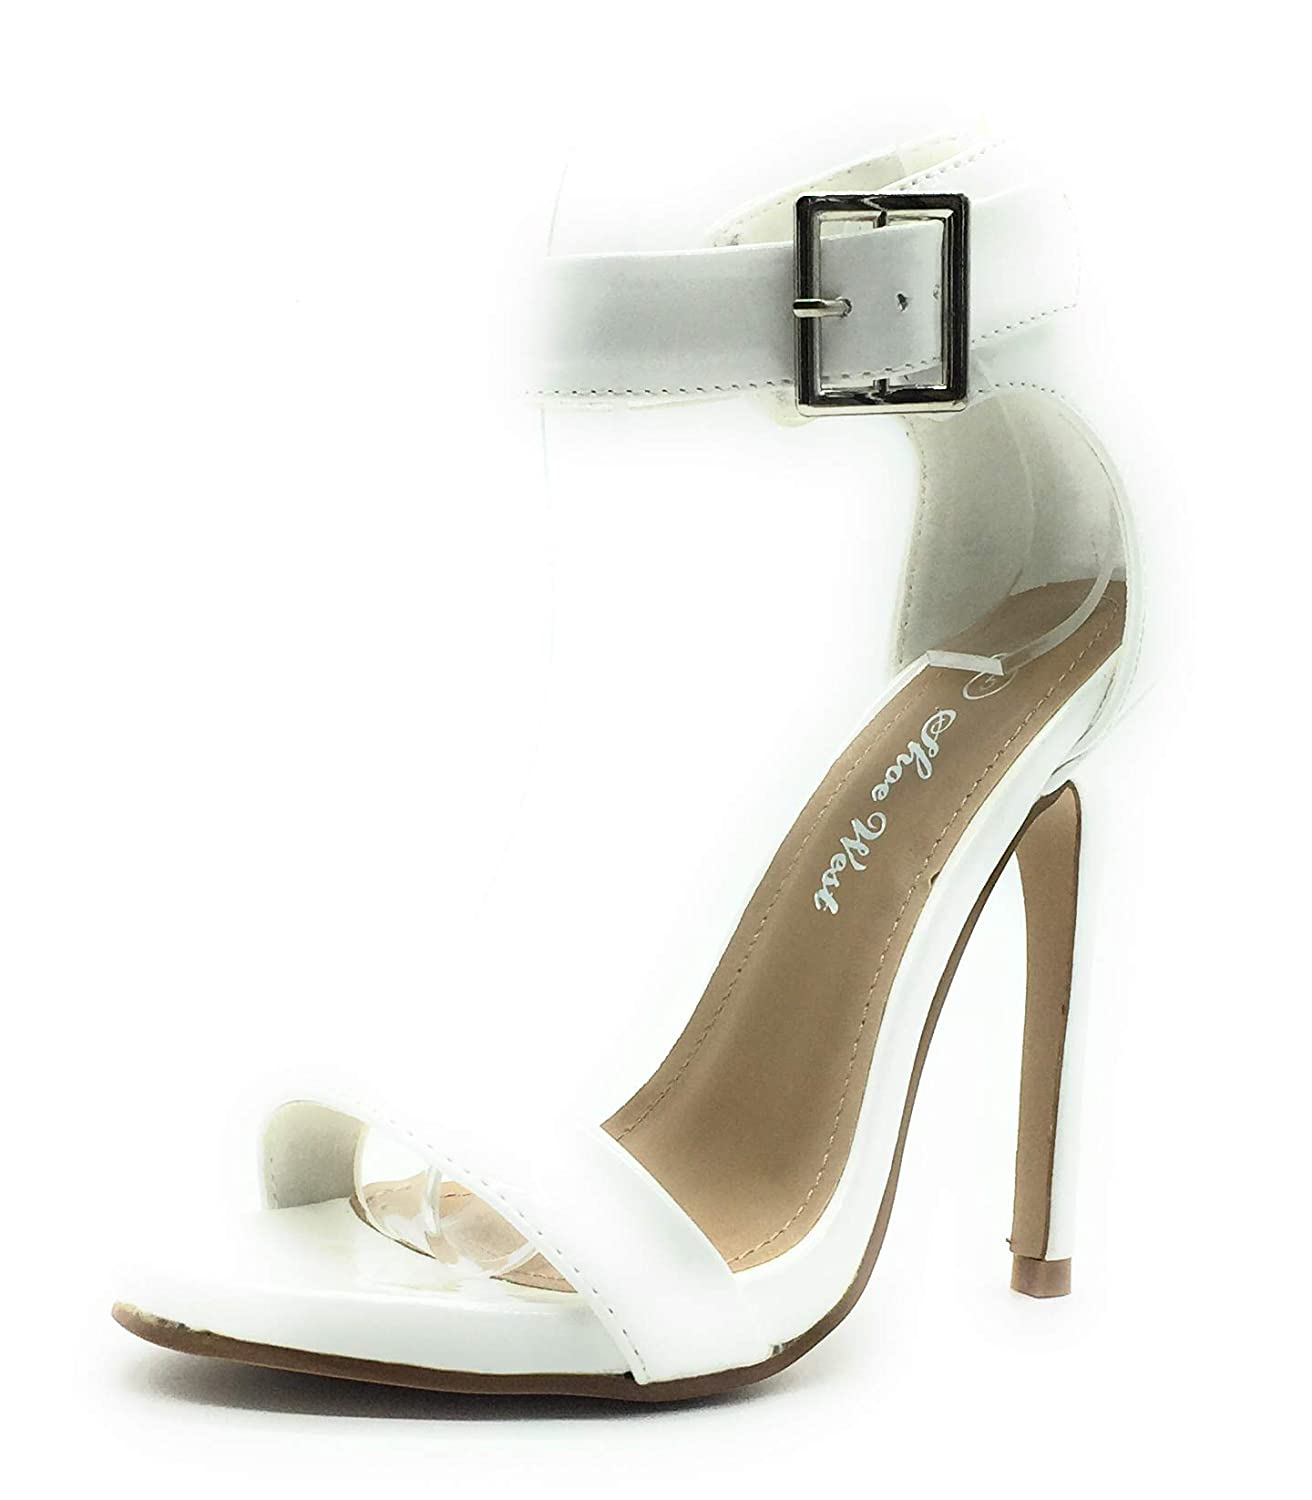 White Pat Sexy Open Toe Pump shoes -Cross Strap Party Dress Platfoms Ankle Strap Dress High Heels Stilettos